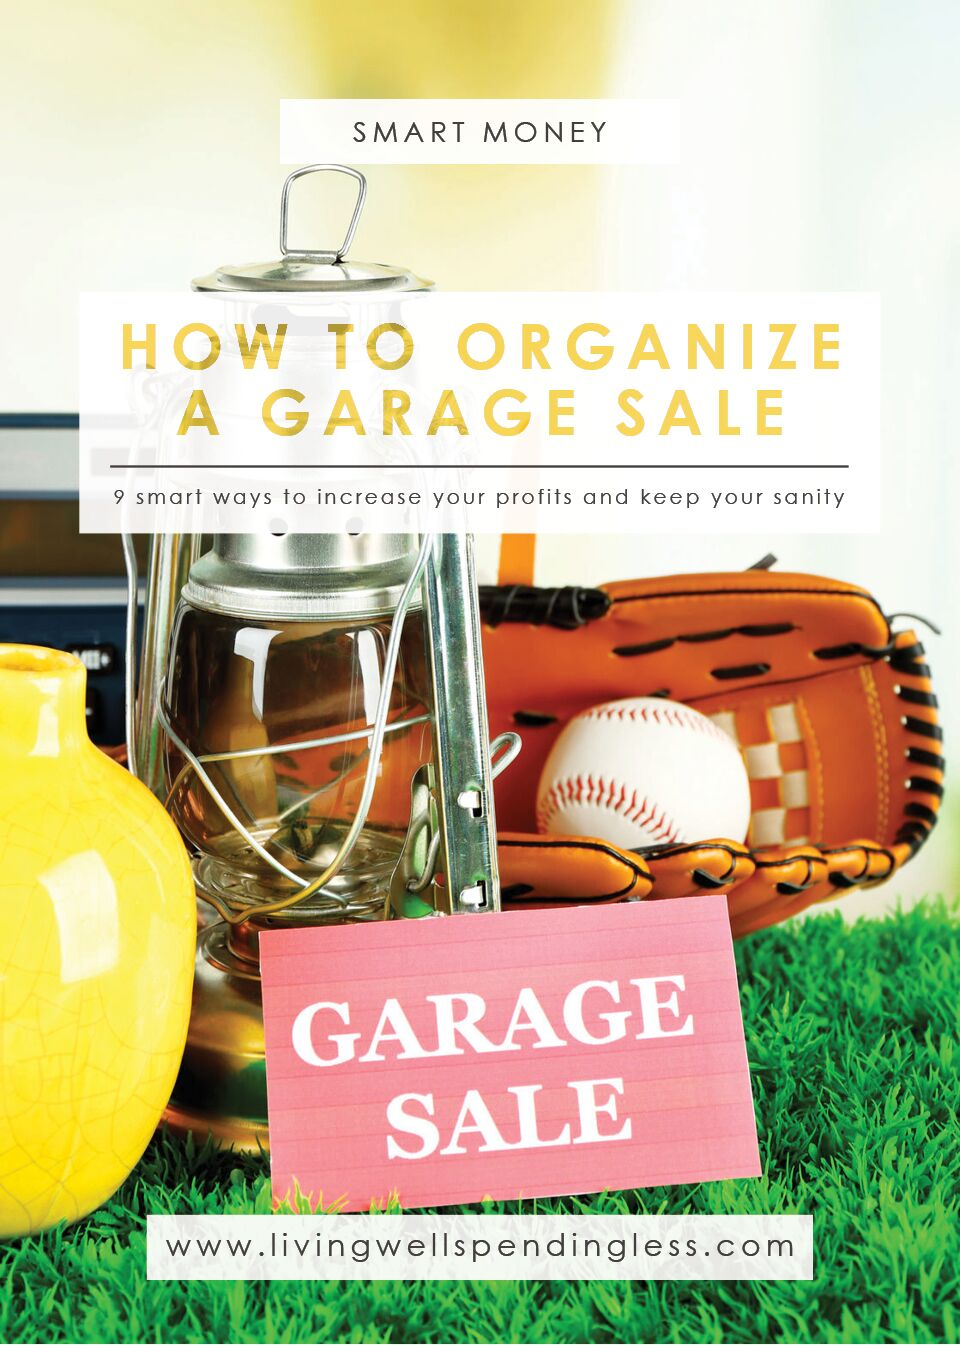 Organize a Garage Sale | Successful Garage Sale Tricks | Yard Sale Ideas | Garage Sale Tips | Tips for Pricing Items | Garage Sale Checklist